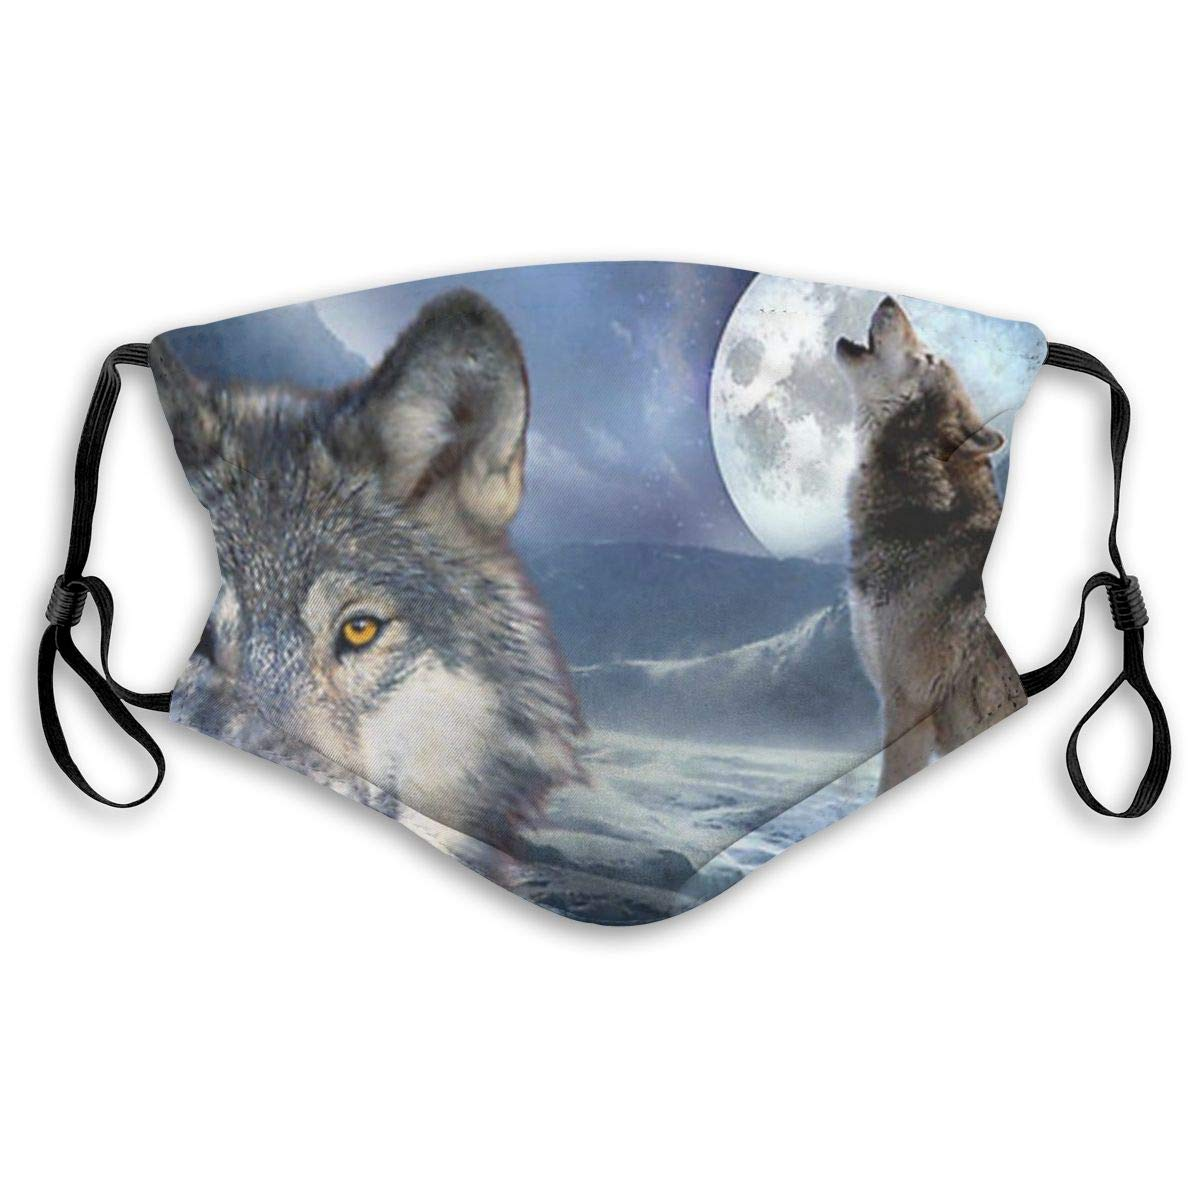 Howling Wolves Protective Mask With Gasket Disposable Water Repellent Multilayer Filter Adult Sunscreen Large Mask S